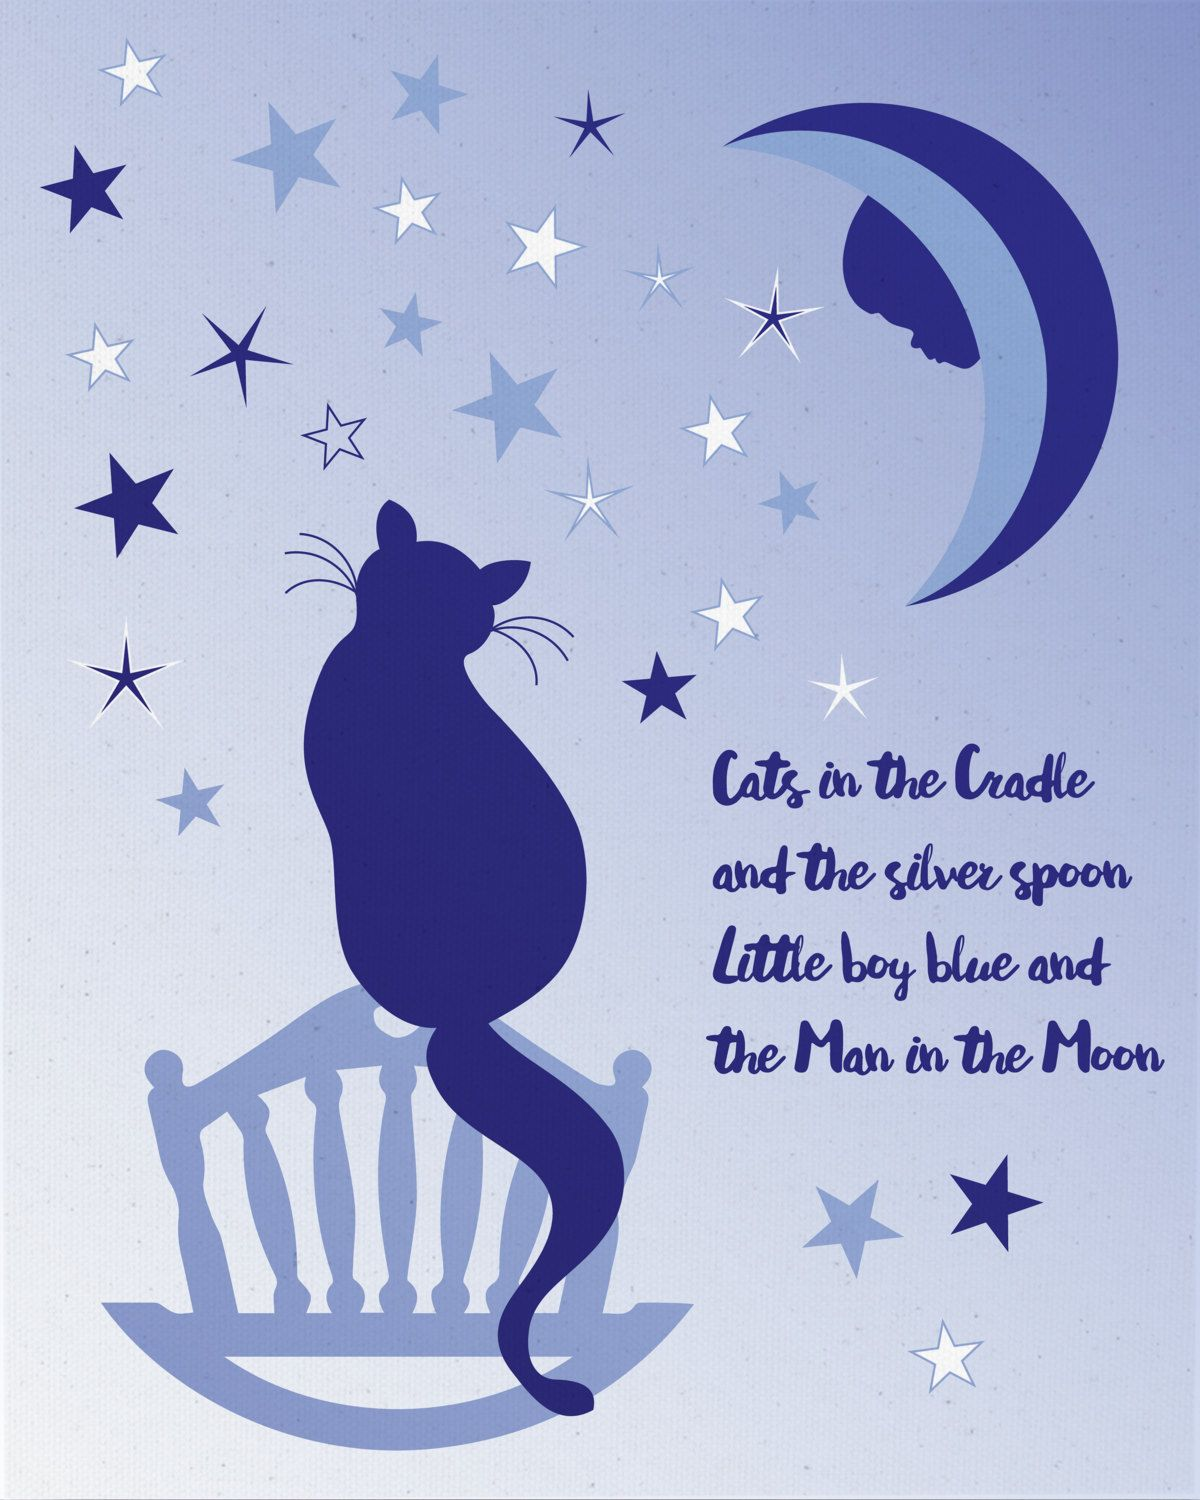 Cats in the cradle w a silver spoon.... And music was